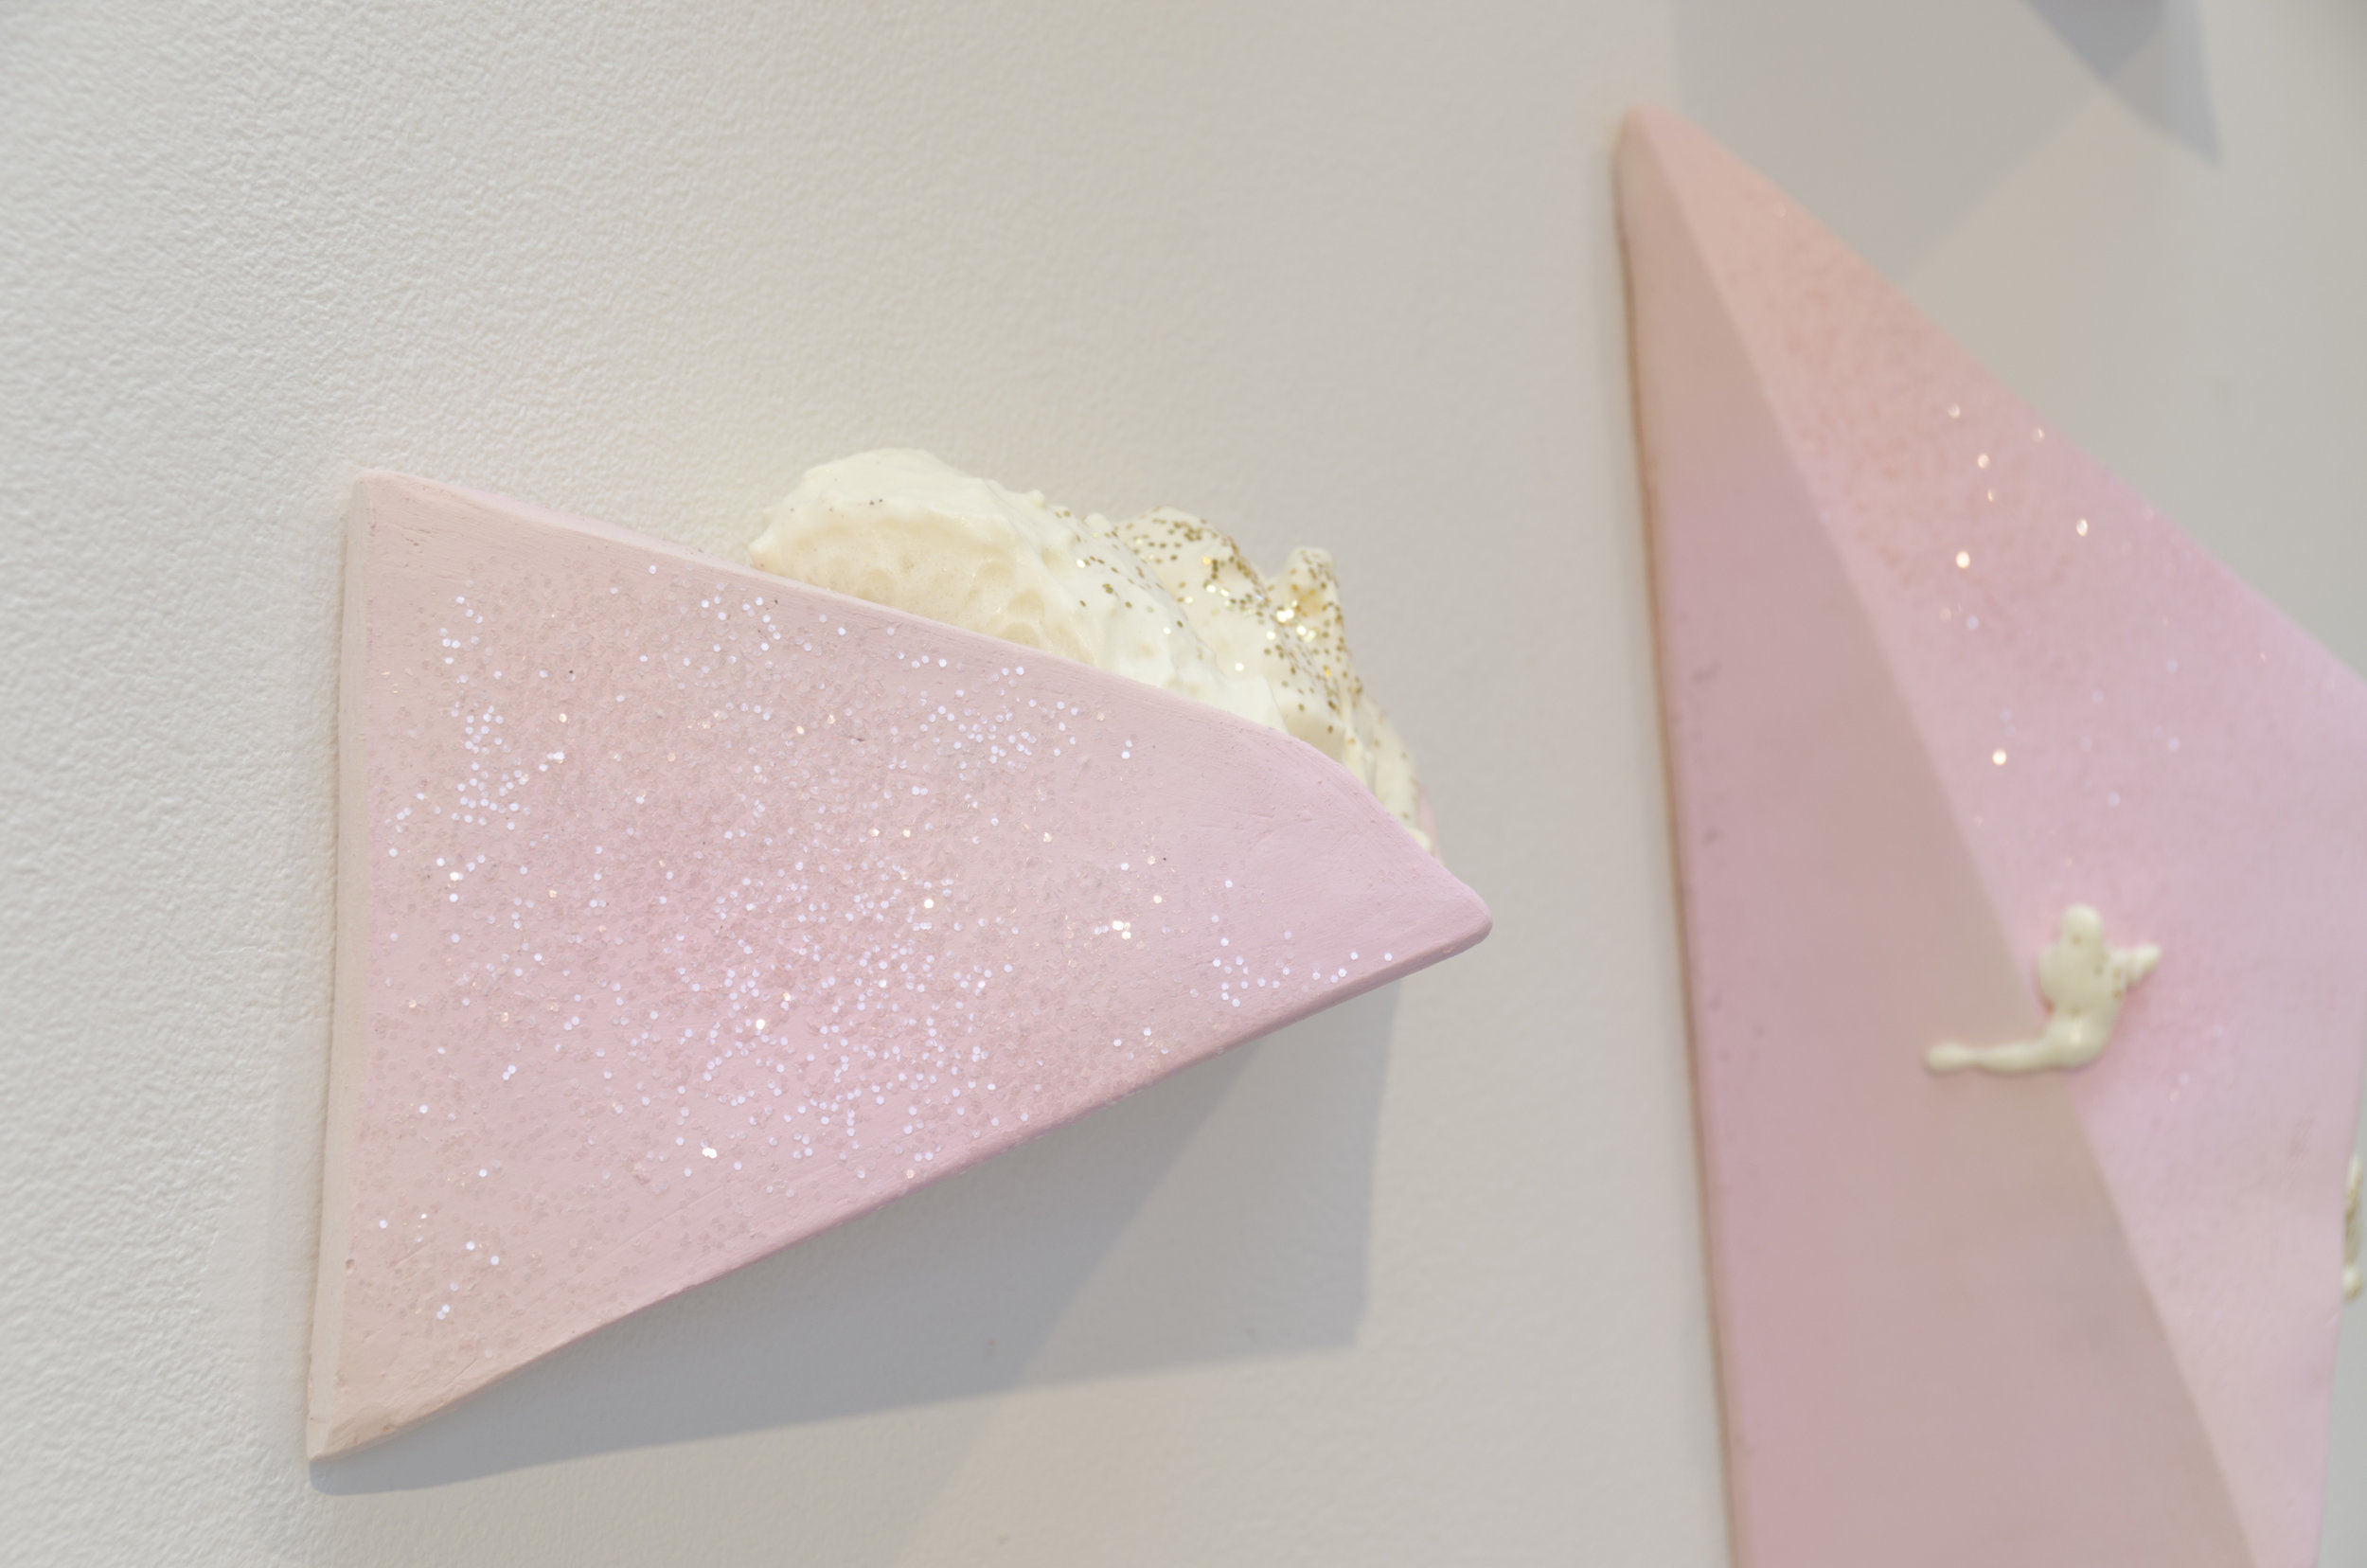 Top or Bottom  (Detail)  Ceramic, foam, glitter, spray paint, and cardboard  2017  Collaborative work with Annastasia Calvert at the exhibitions  Boys Will Be Boys  and  Altered Landscapes